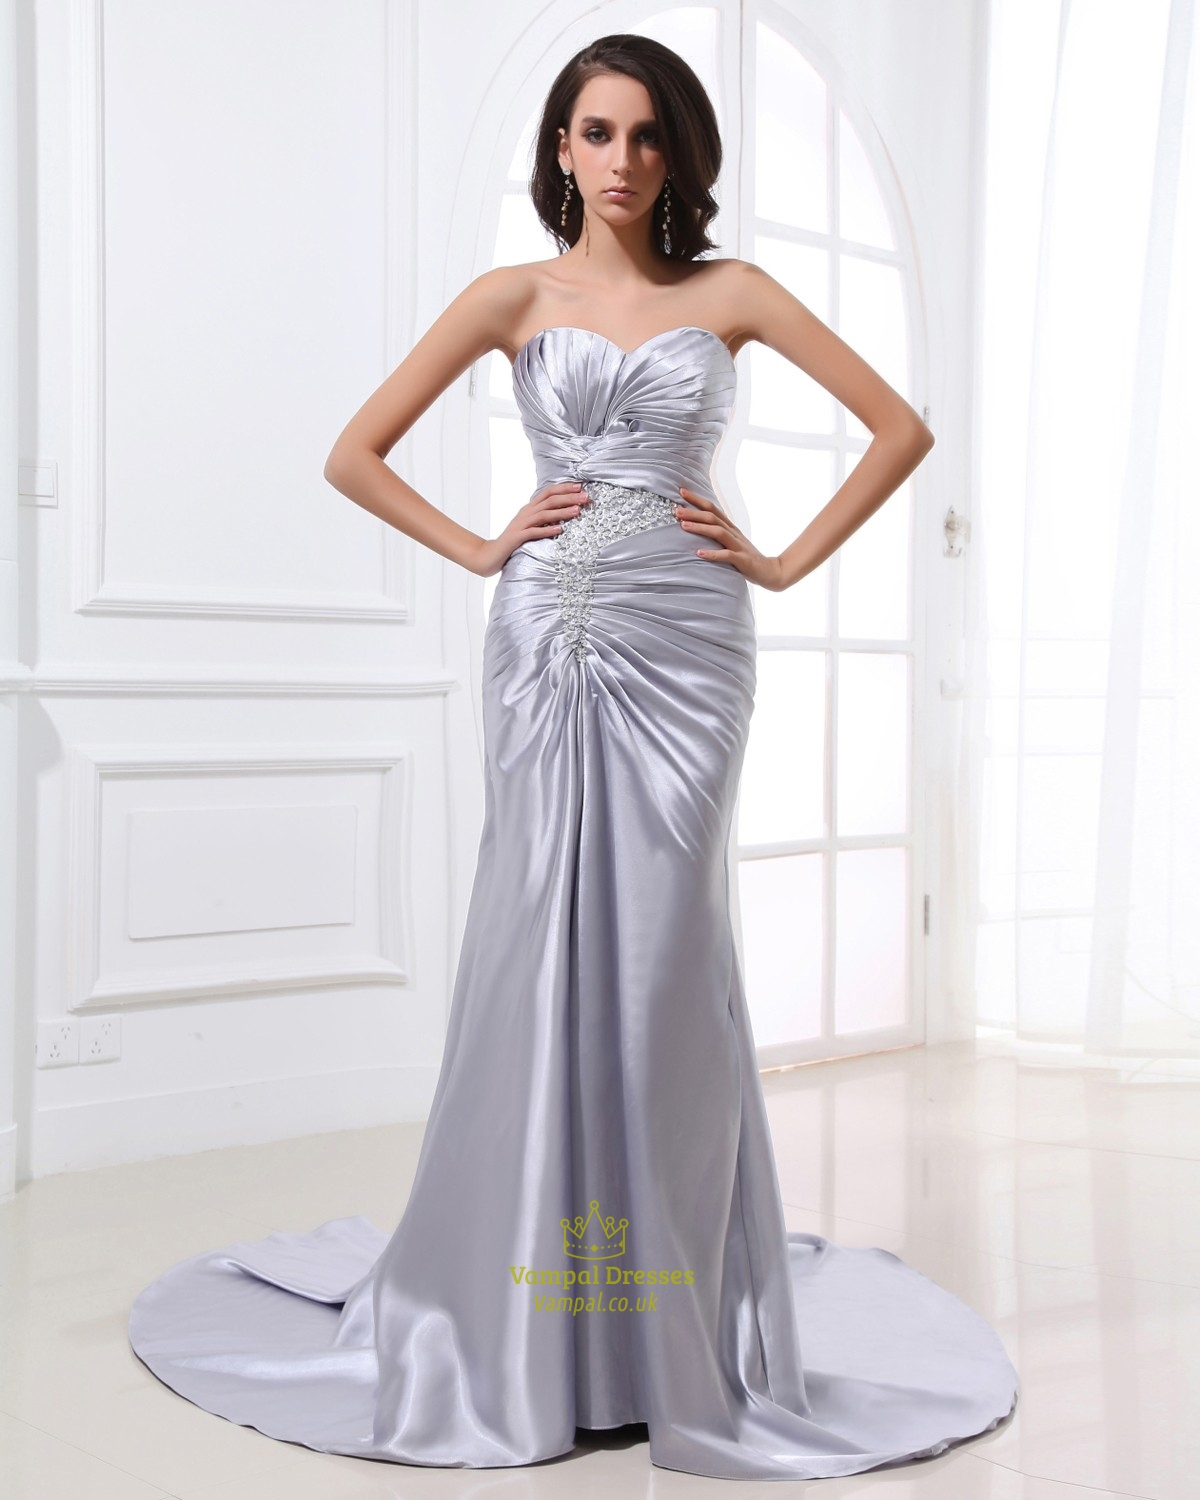 White And Silver Prom Dresses 2016,Silver Satin Prom Dress | Vampal ...